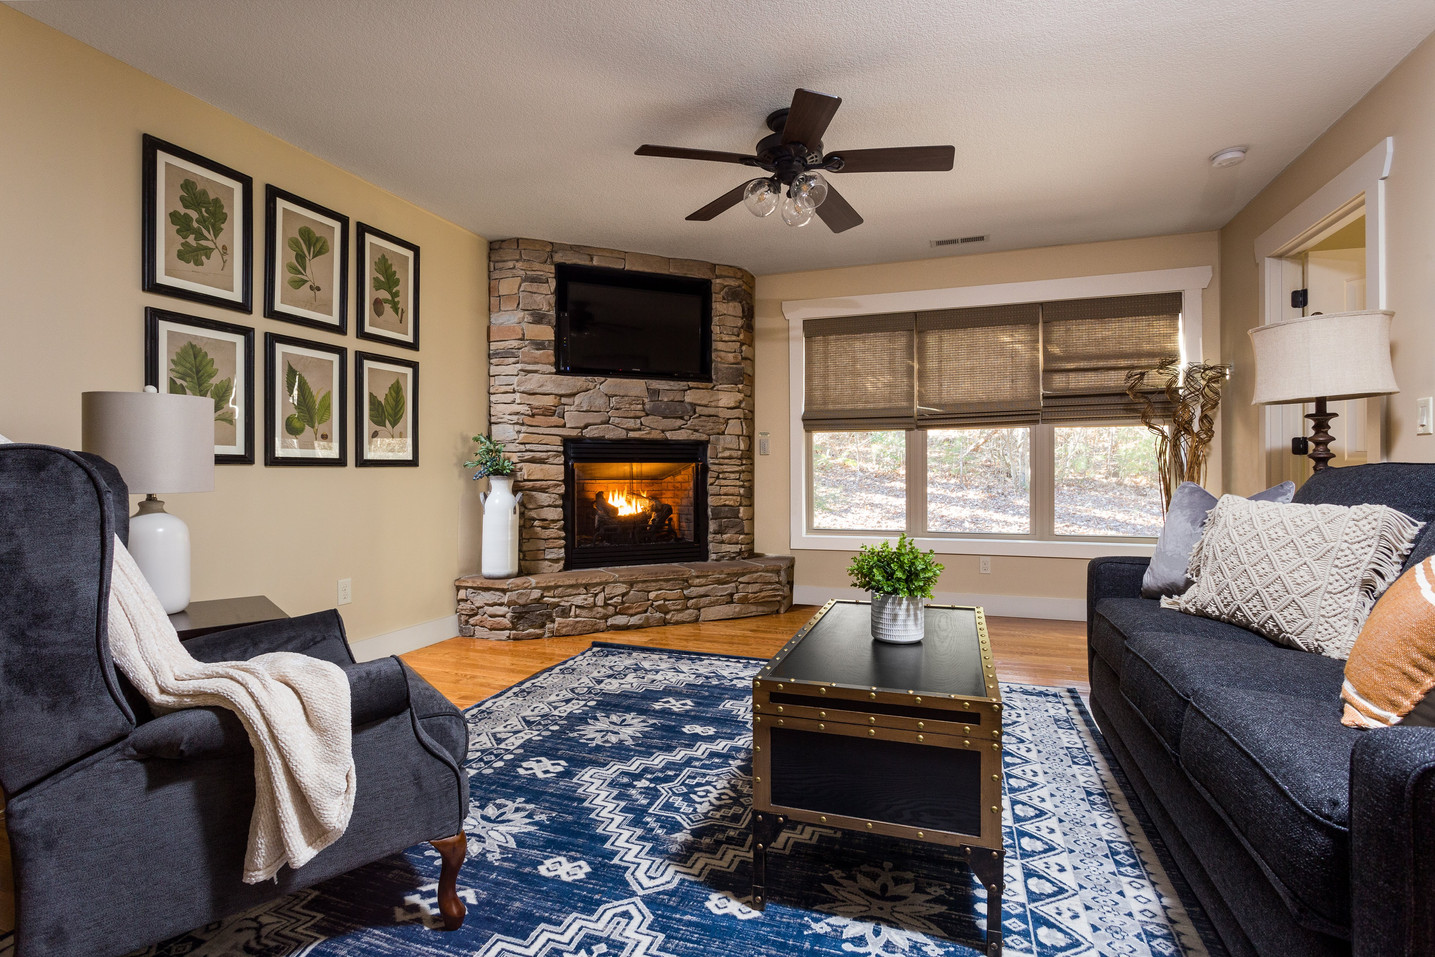 Fireplace, TV and a large recliner